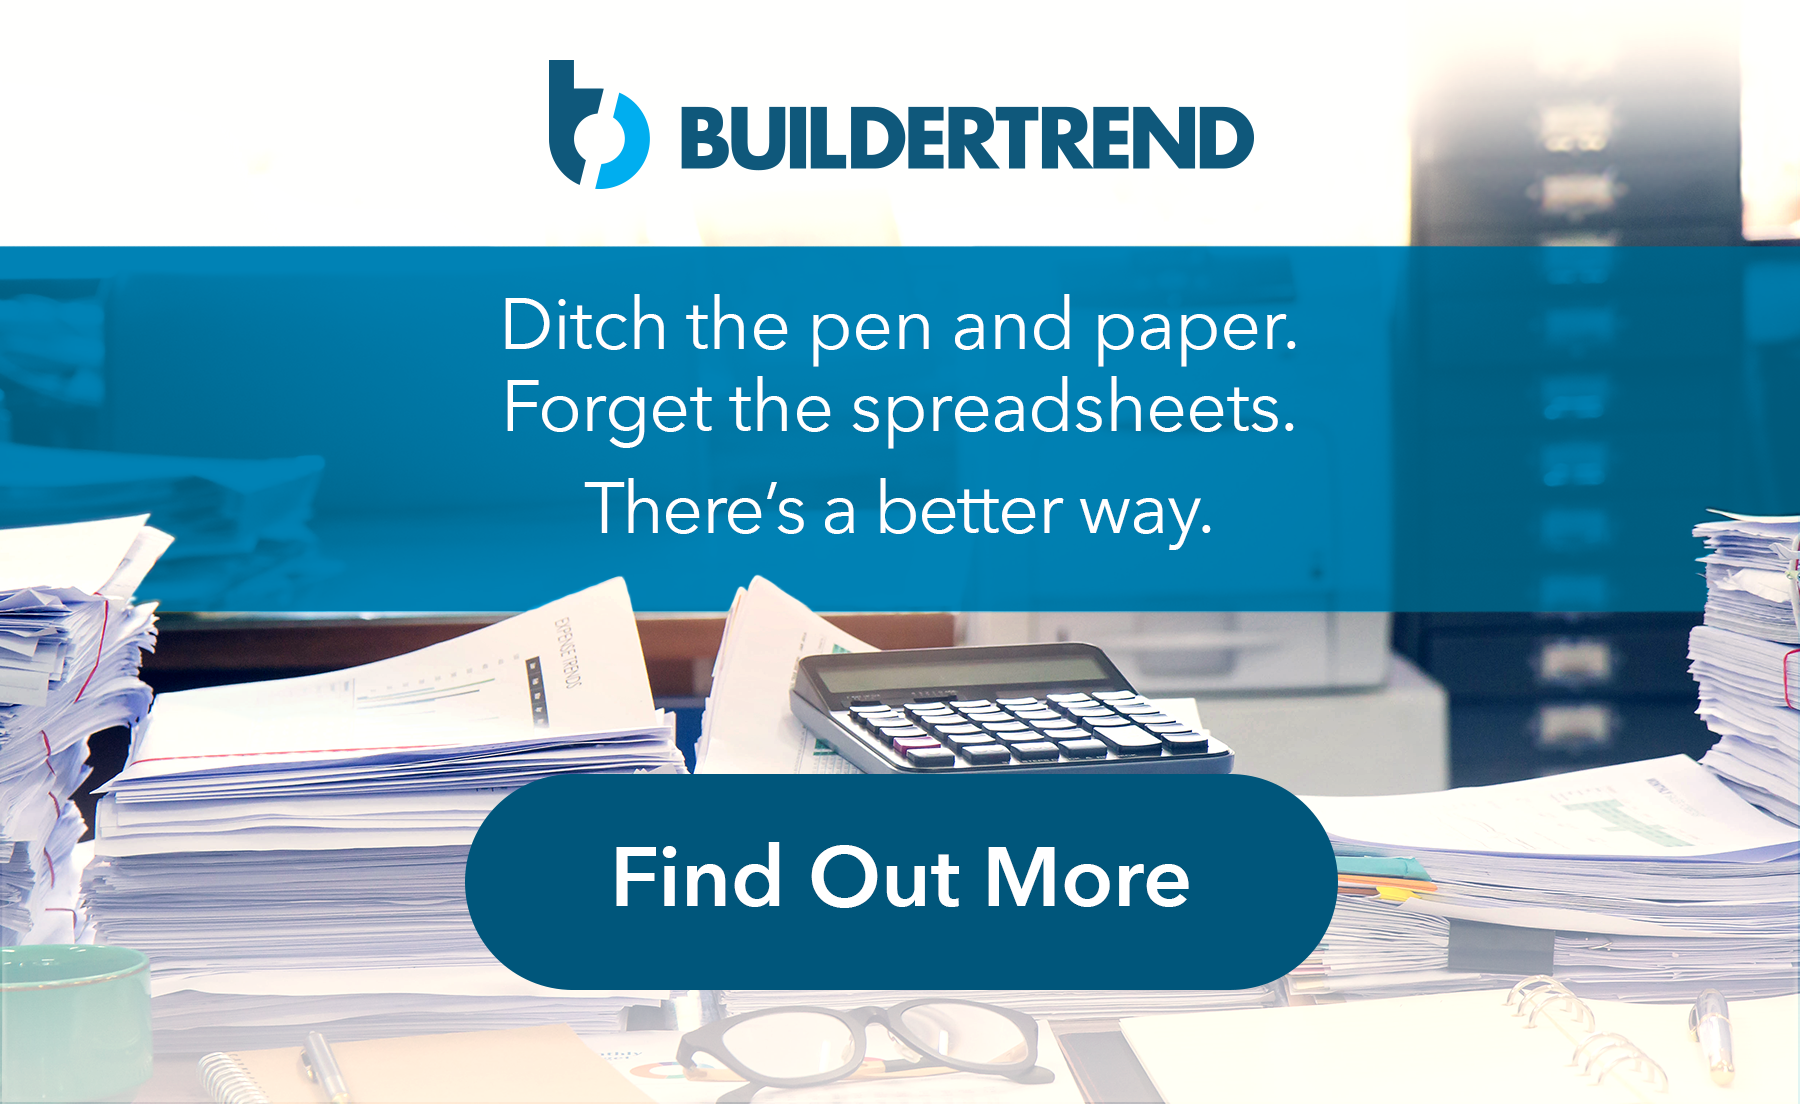 ditch the pen and paper - forget the spreadsheets - there's a better way